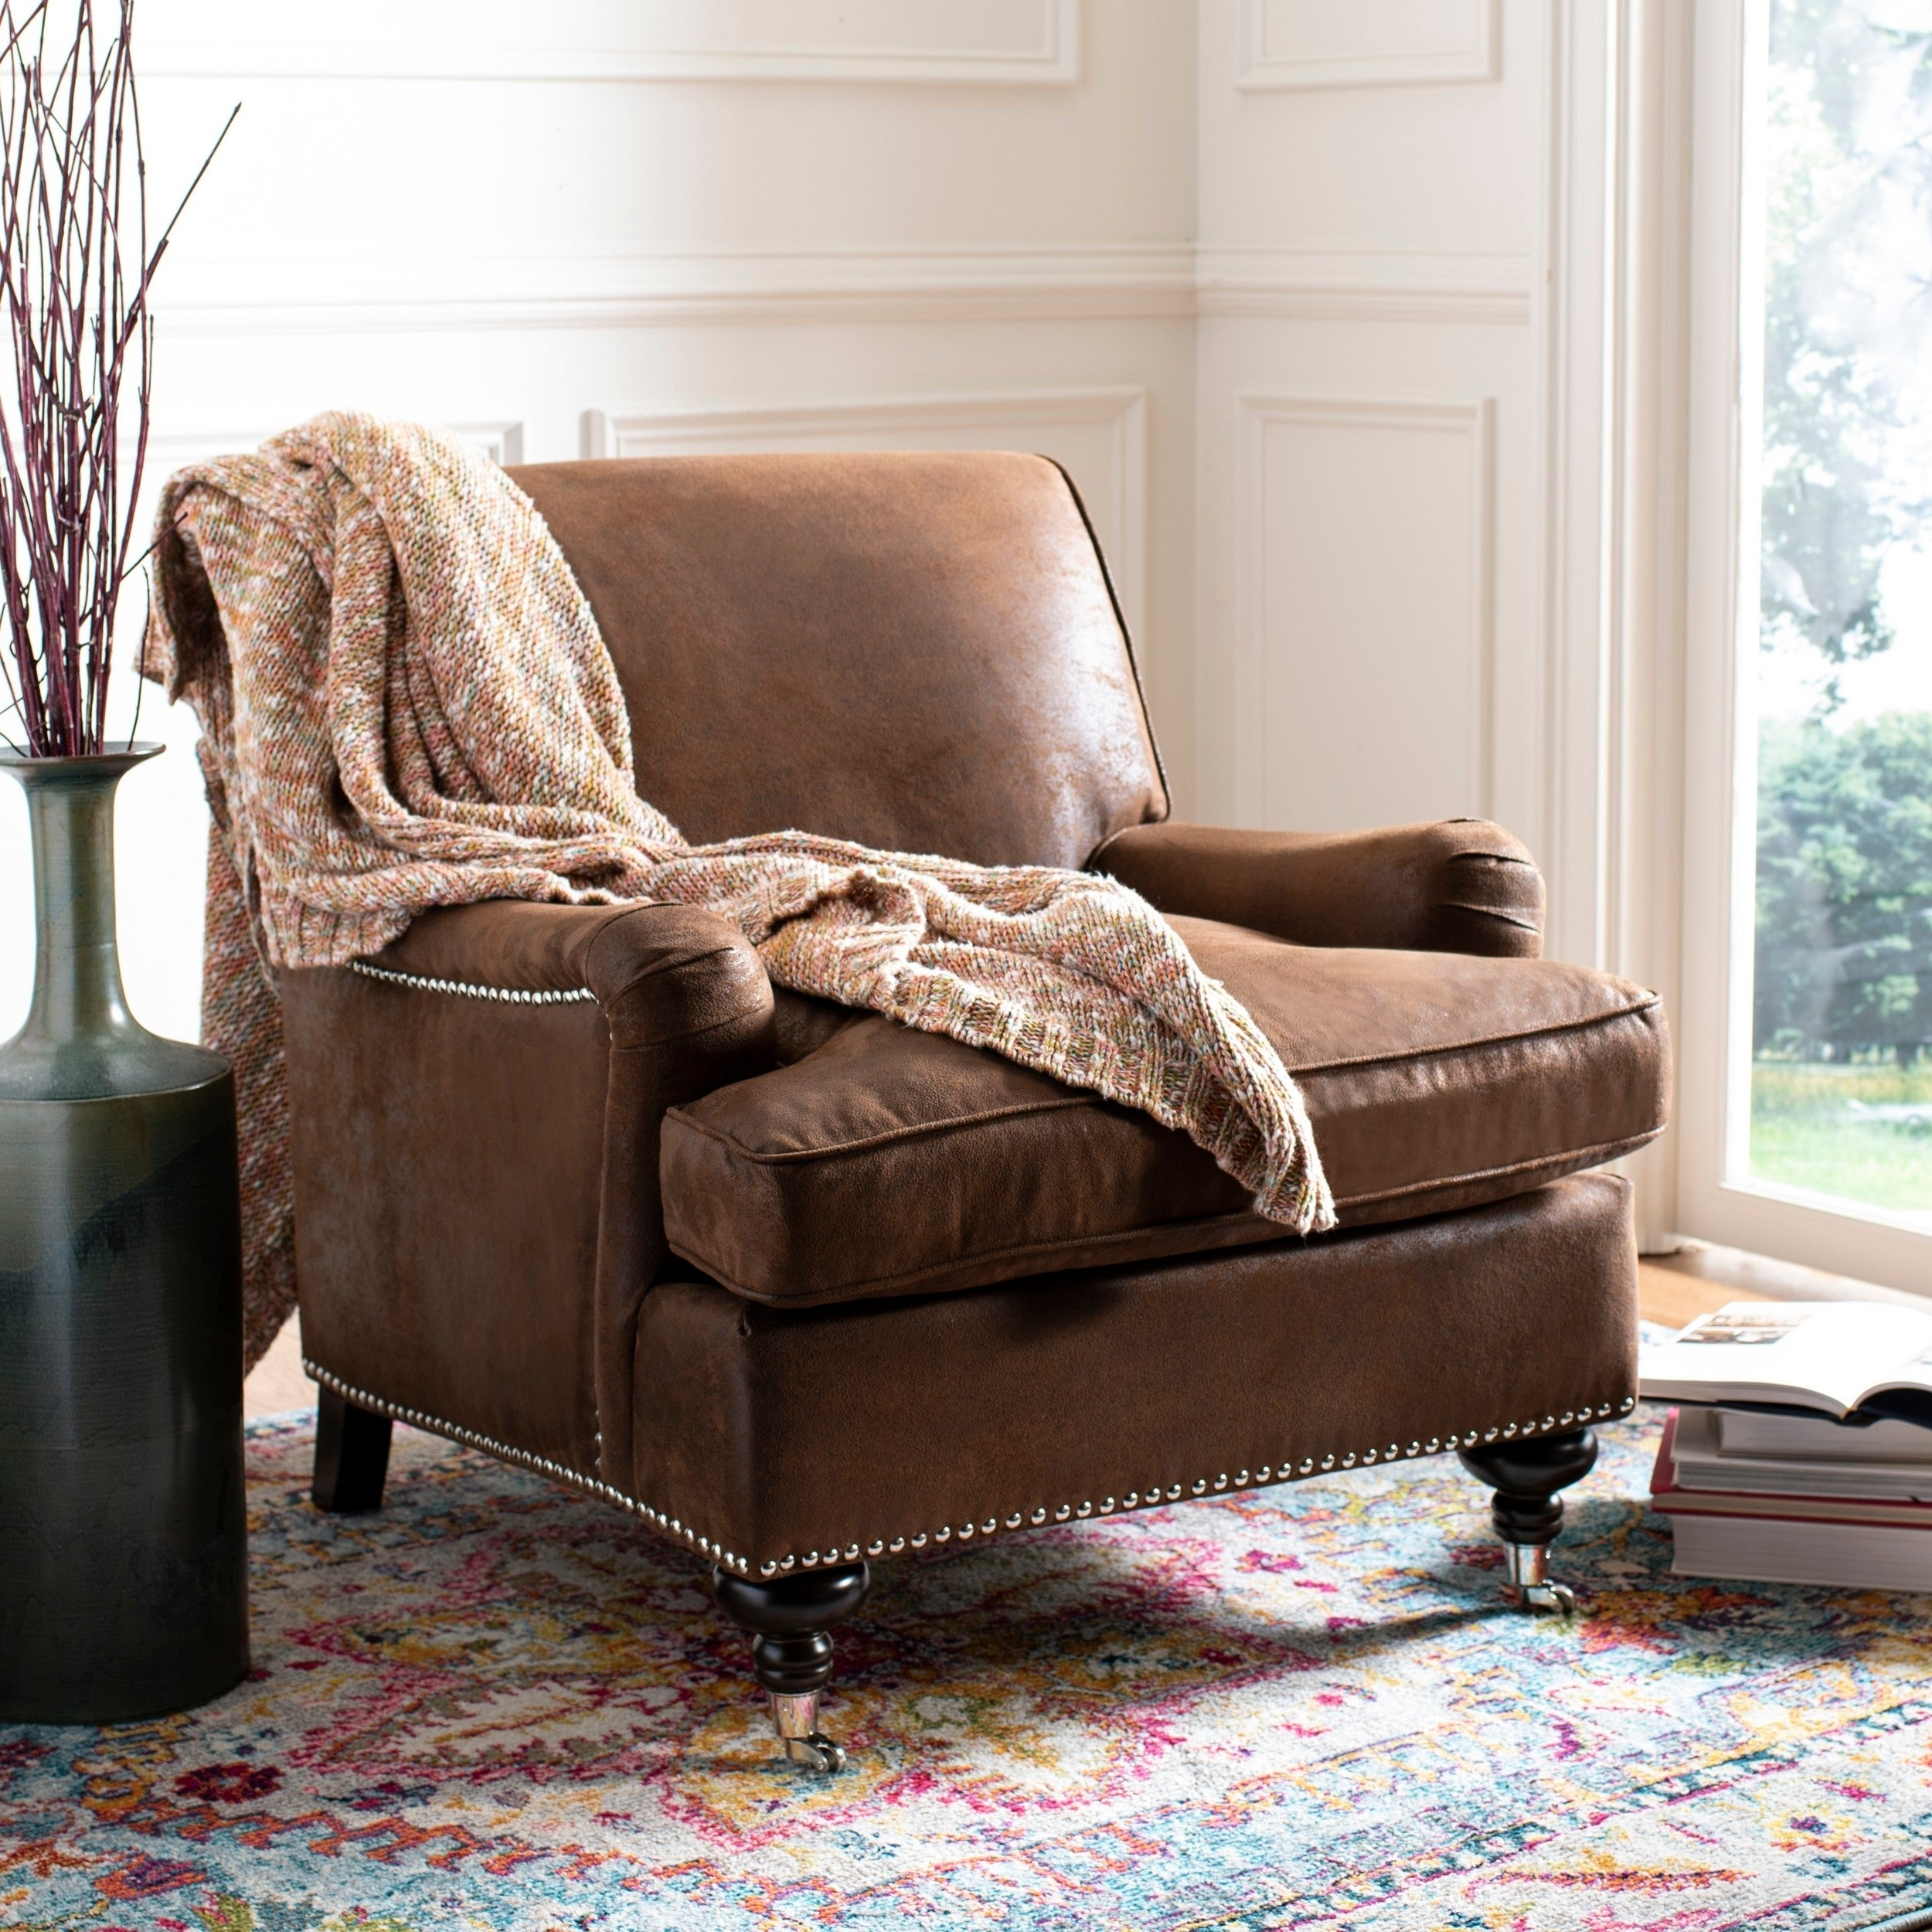 Buy French Country Living Room Chairs Online at Overstock | Our Best ...